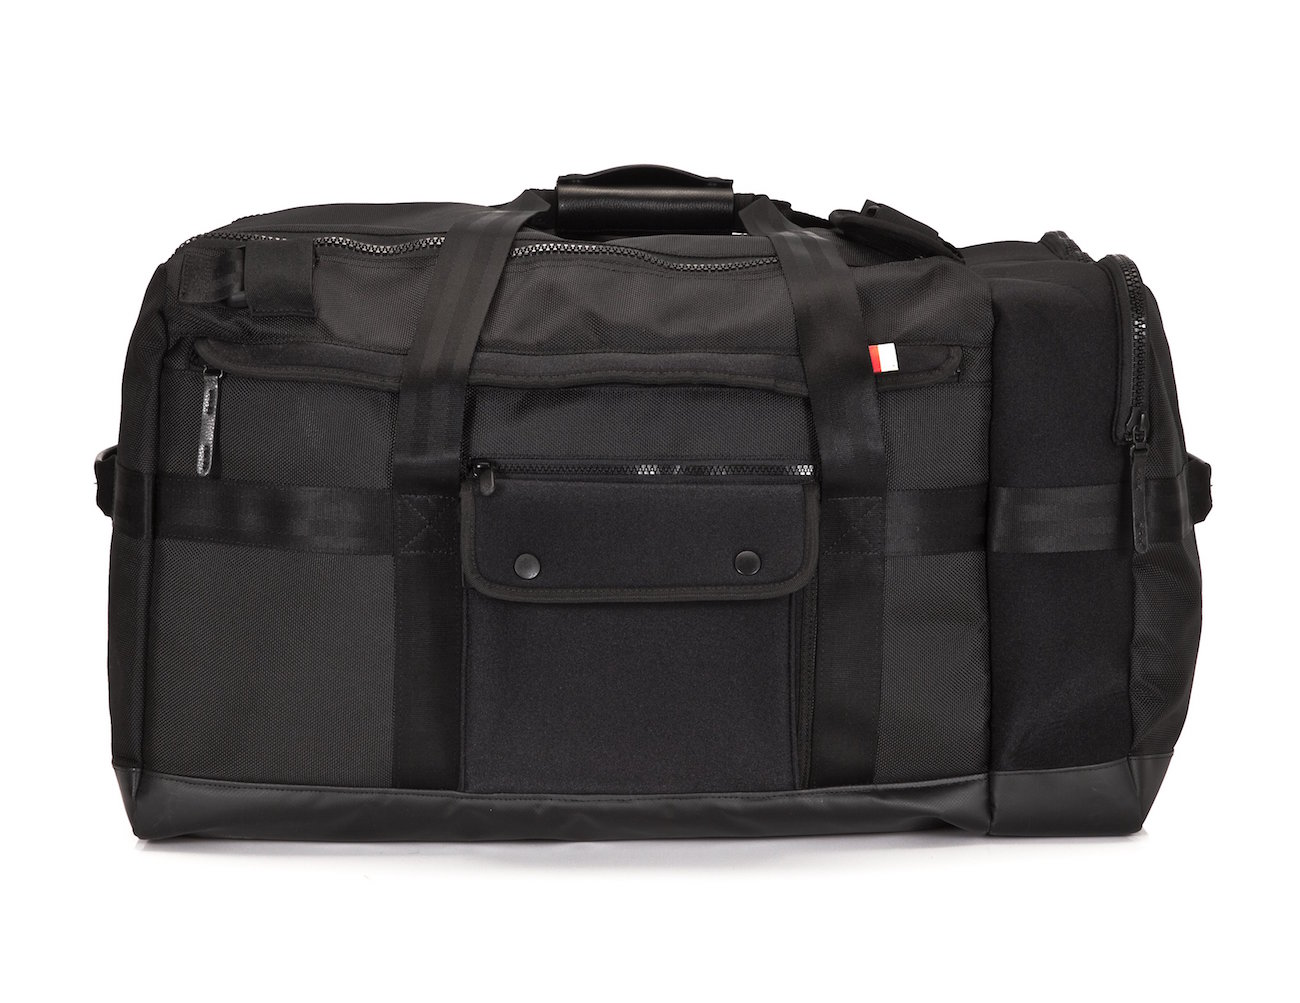 Tahoe Duffel Bag by Lexdray